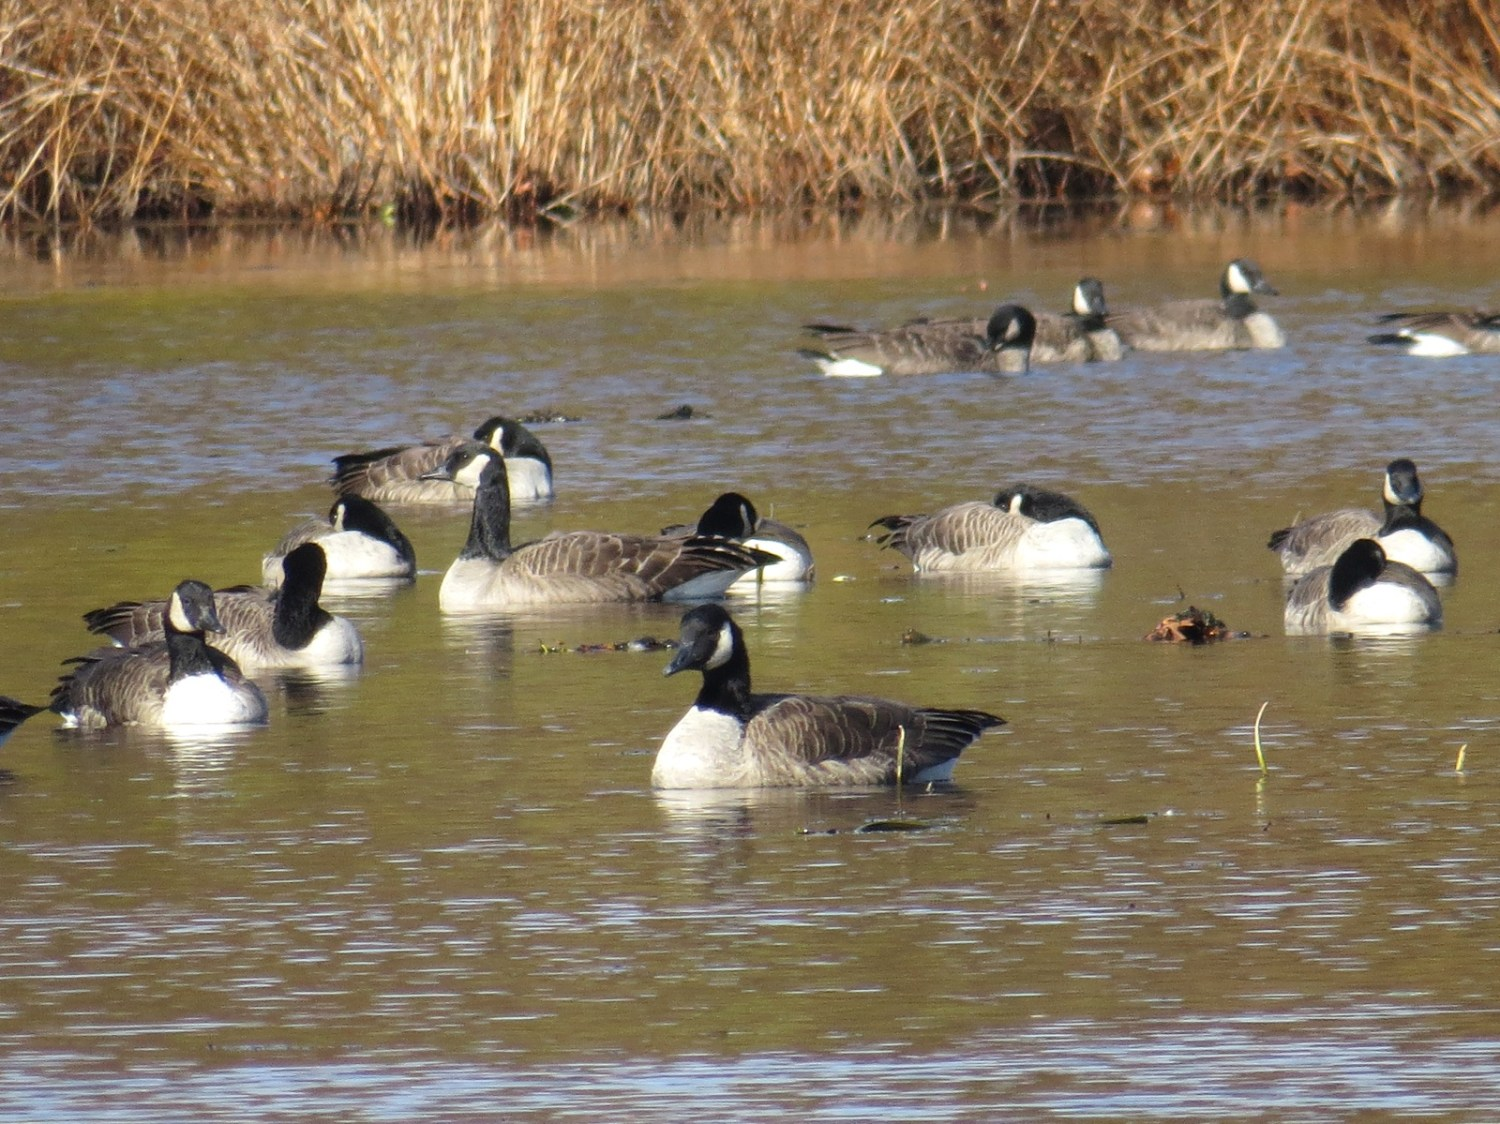 Canada Goose (center foreground) and many Cackling-ish Geese. 8 Nov 2014, Concord, MA. Photo copyright David Sibley.